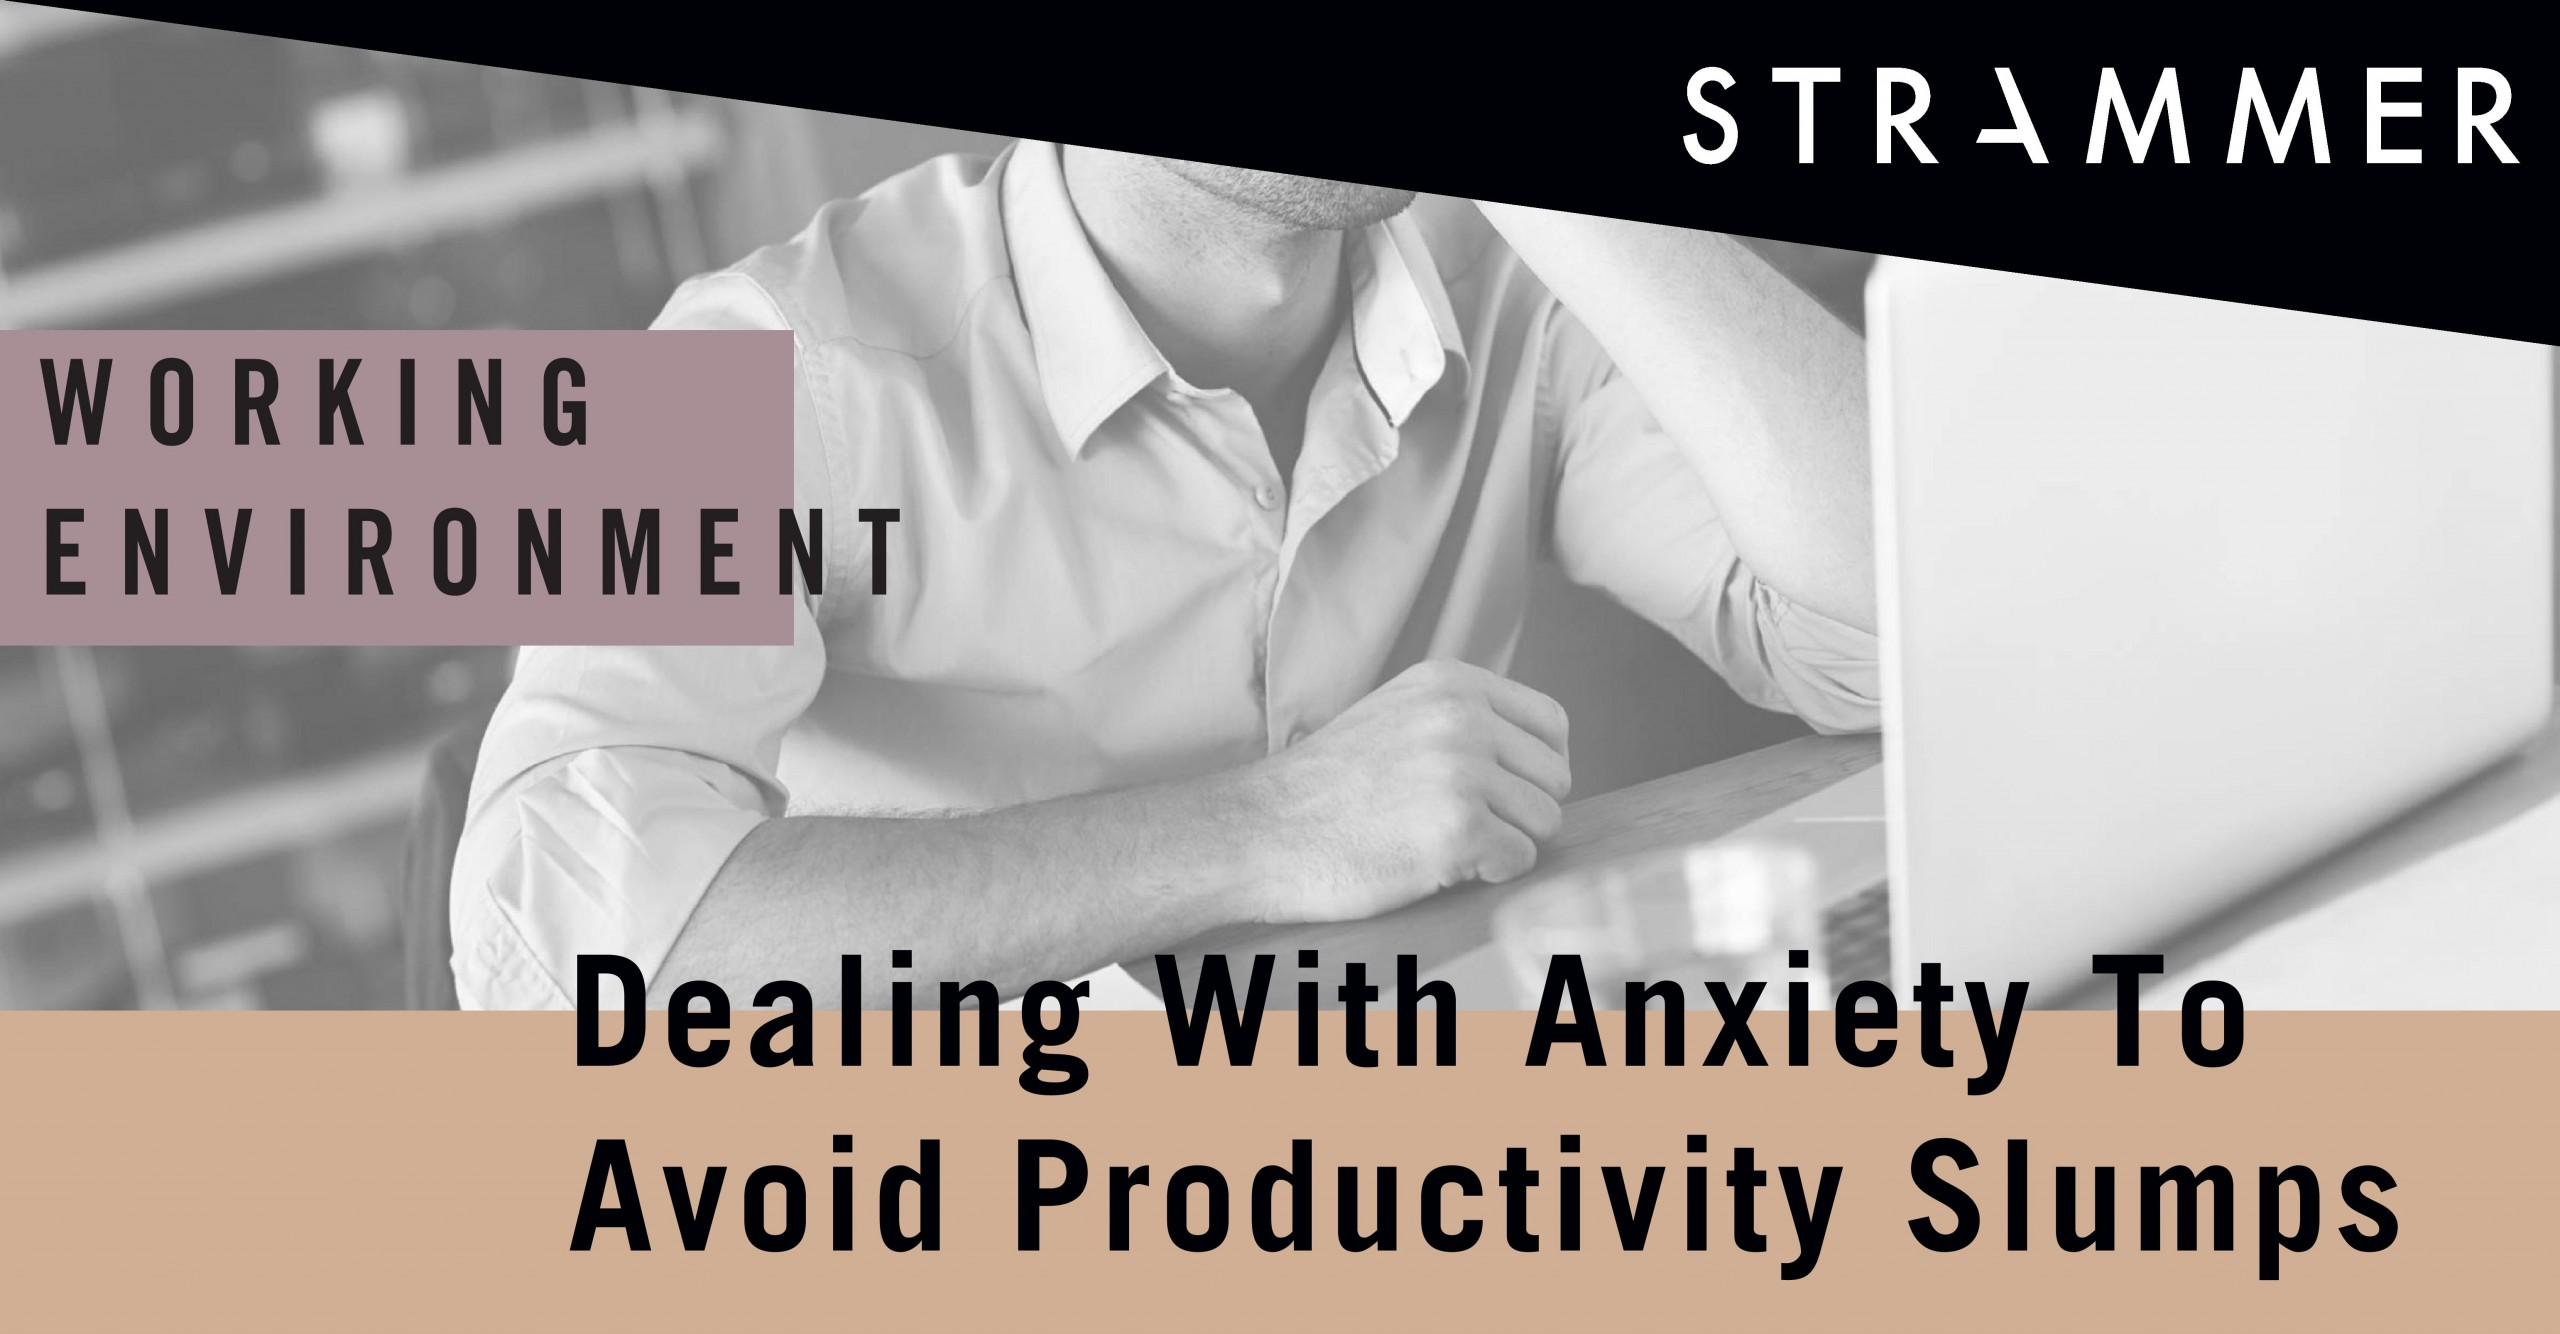 improve productivity by combating anxiety